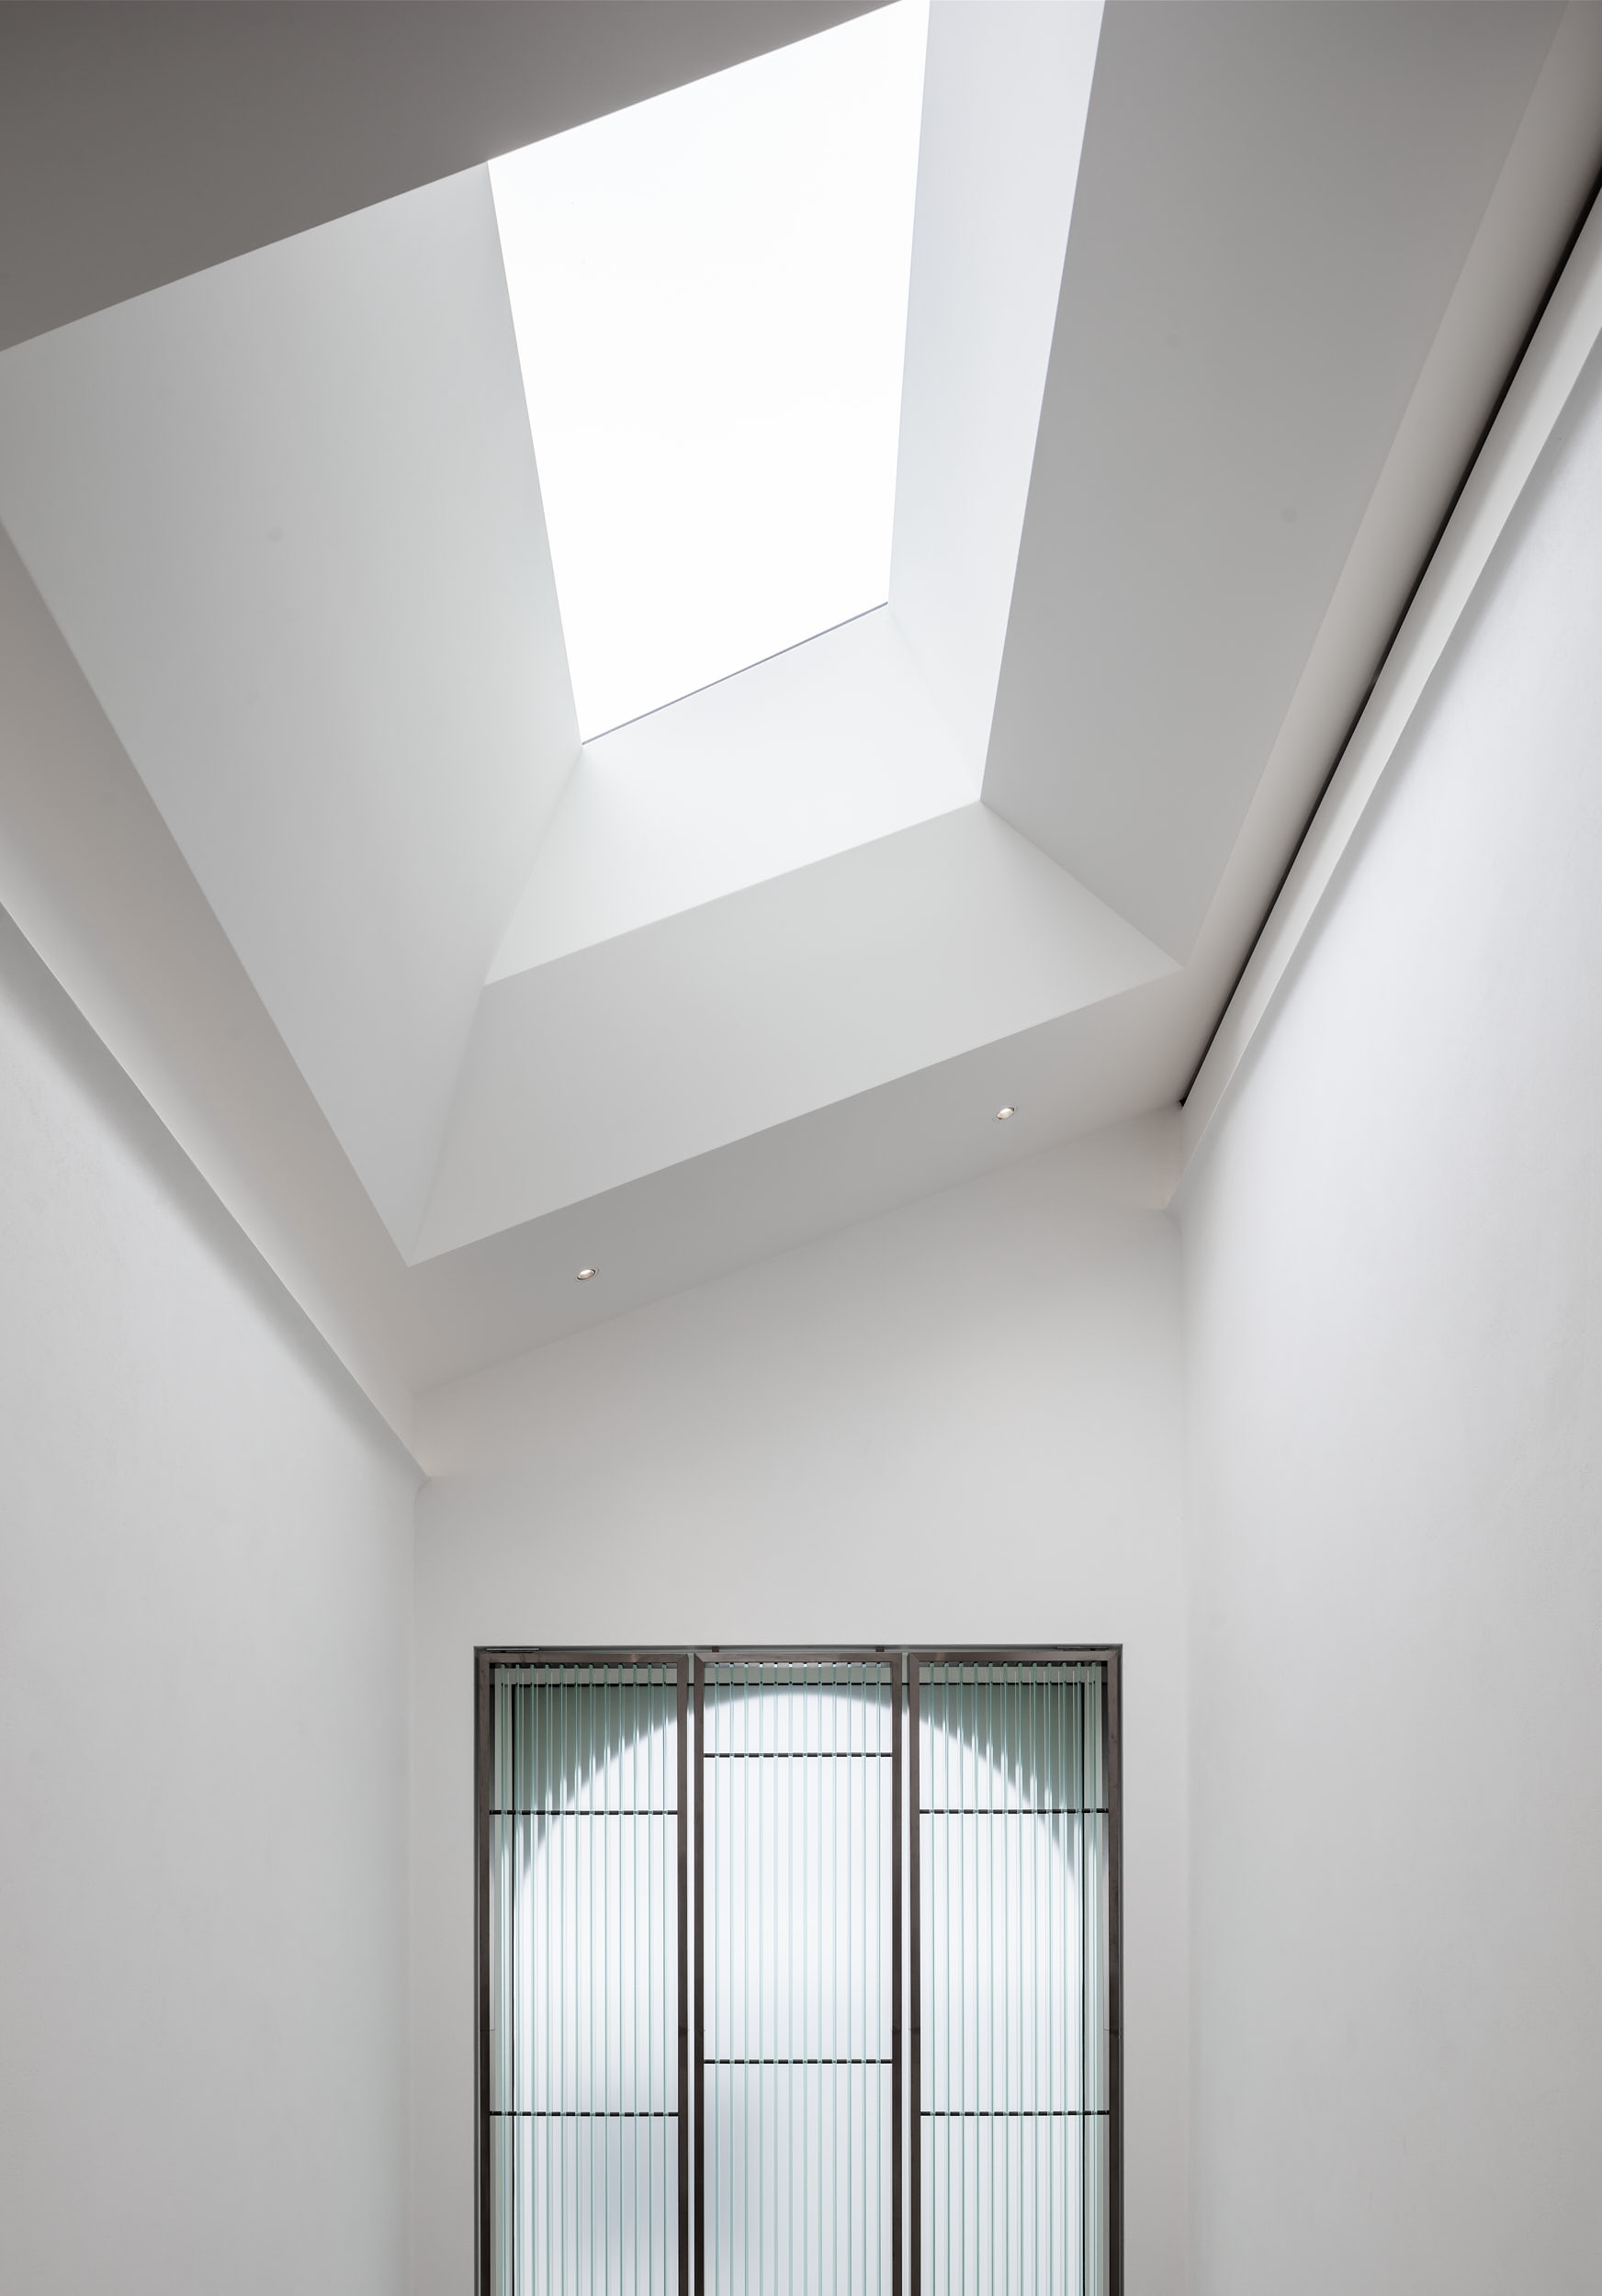 Minimalist design is by London-based 23 Architecture.